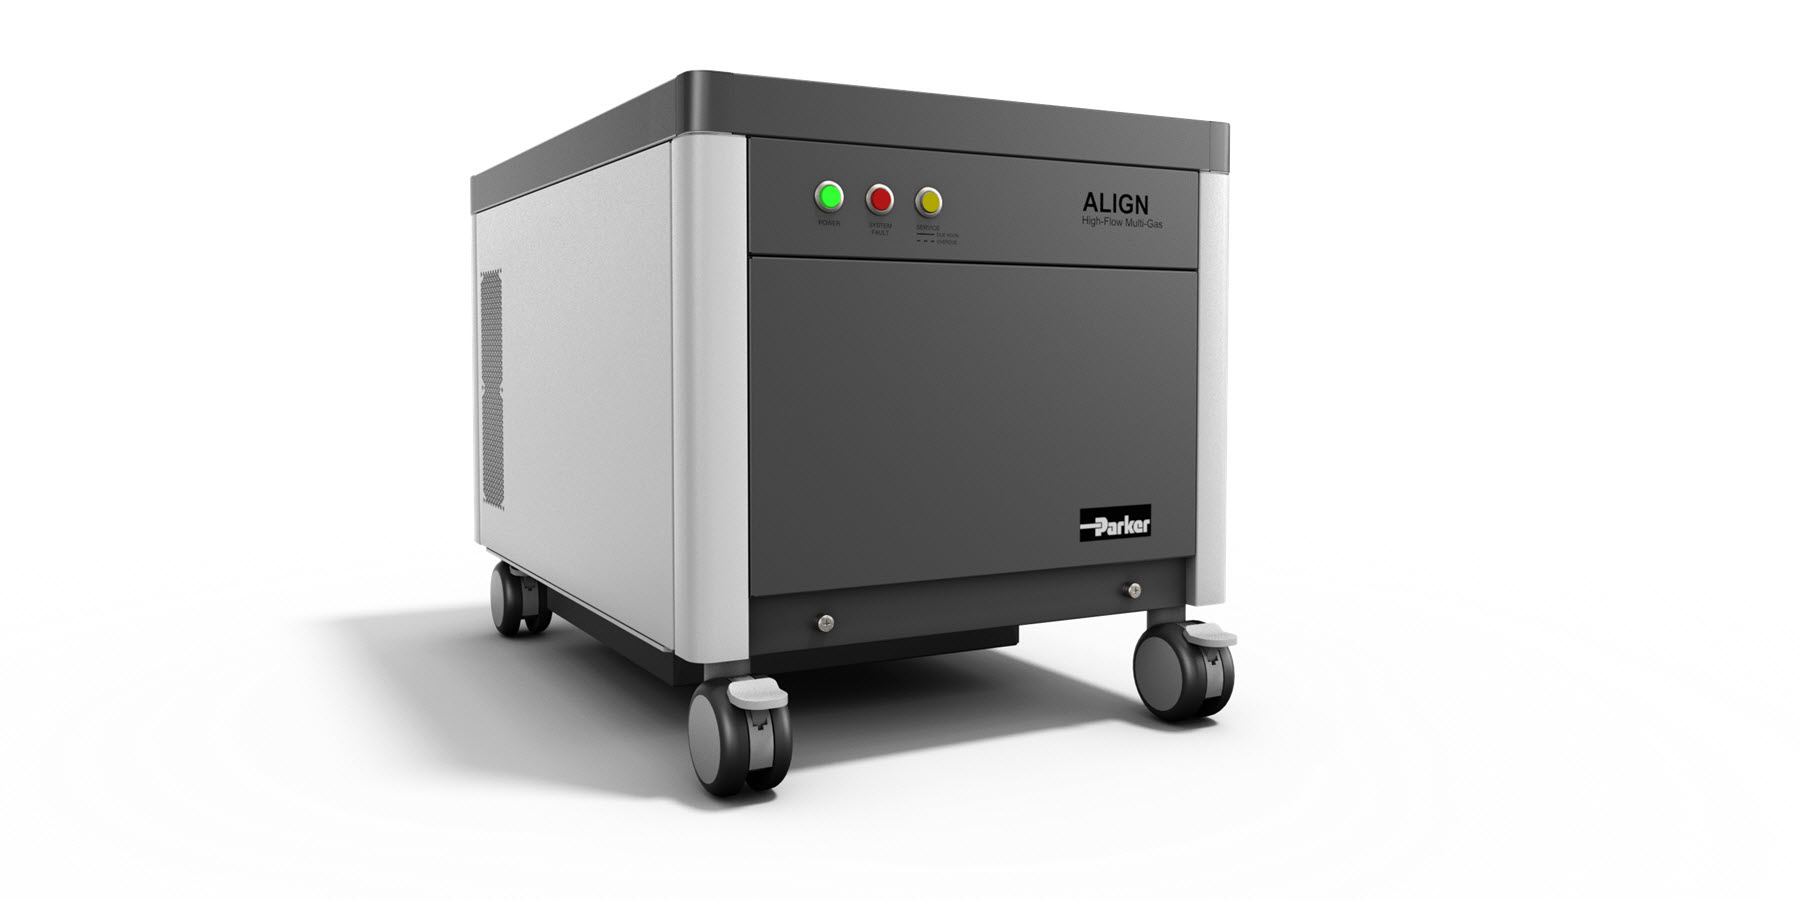 Parker Expands the ALIGN™ Product Line with the High-Flow Multi-Gas Generator to Support SCIEX Triple Quad™ 7500 LC-MS/MS Systems